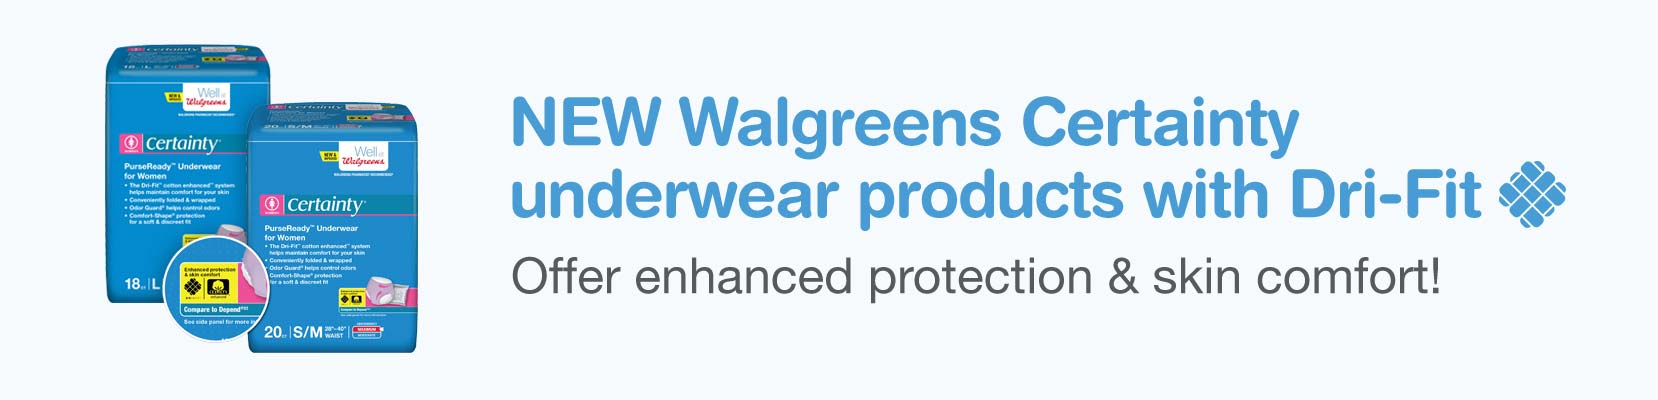 NEW Walgreens Certainty underwear products with Dri-Fit. Offer enhanced protection & skin comfort!